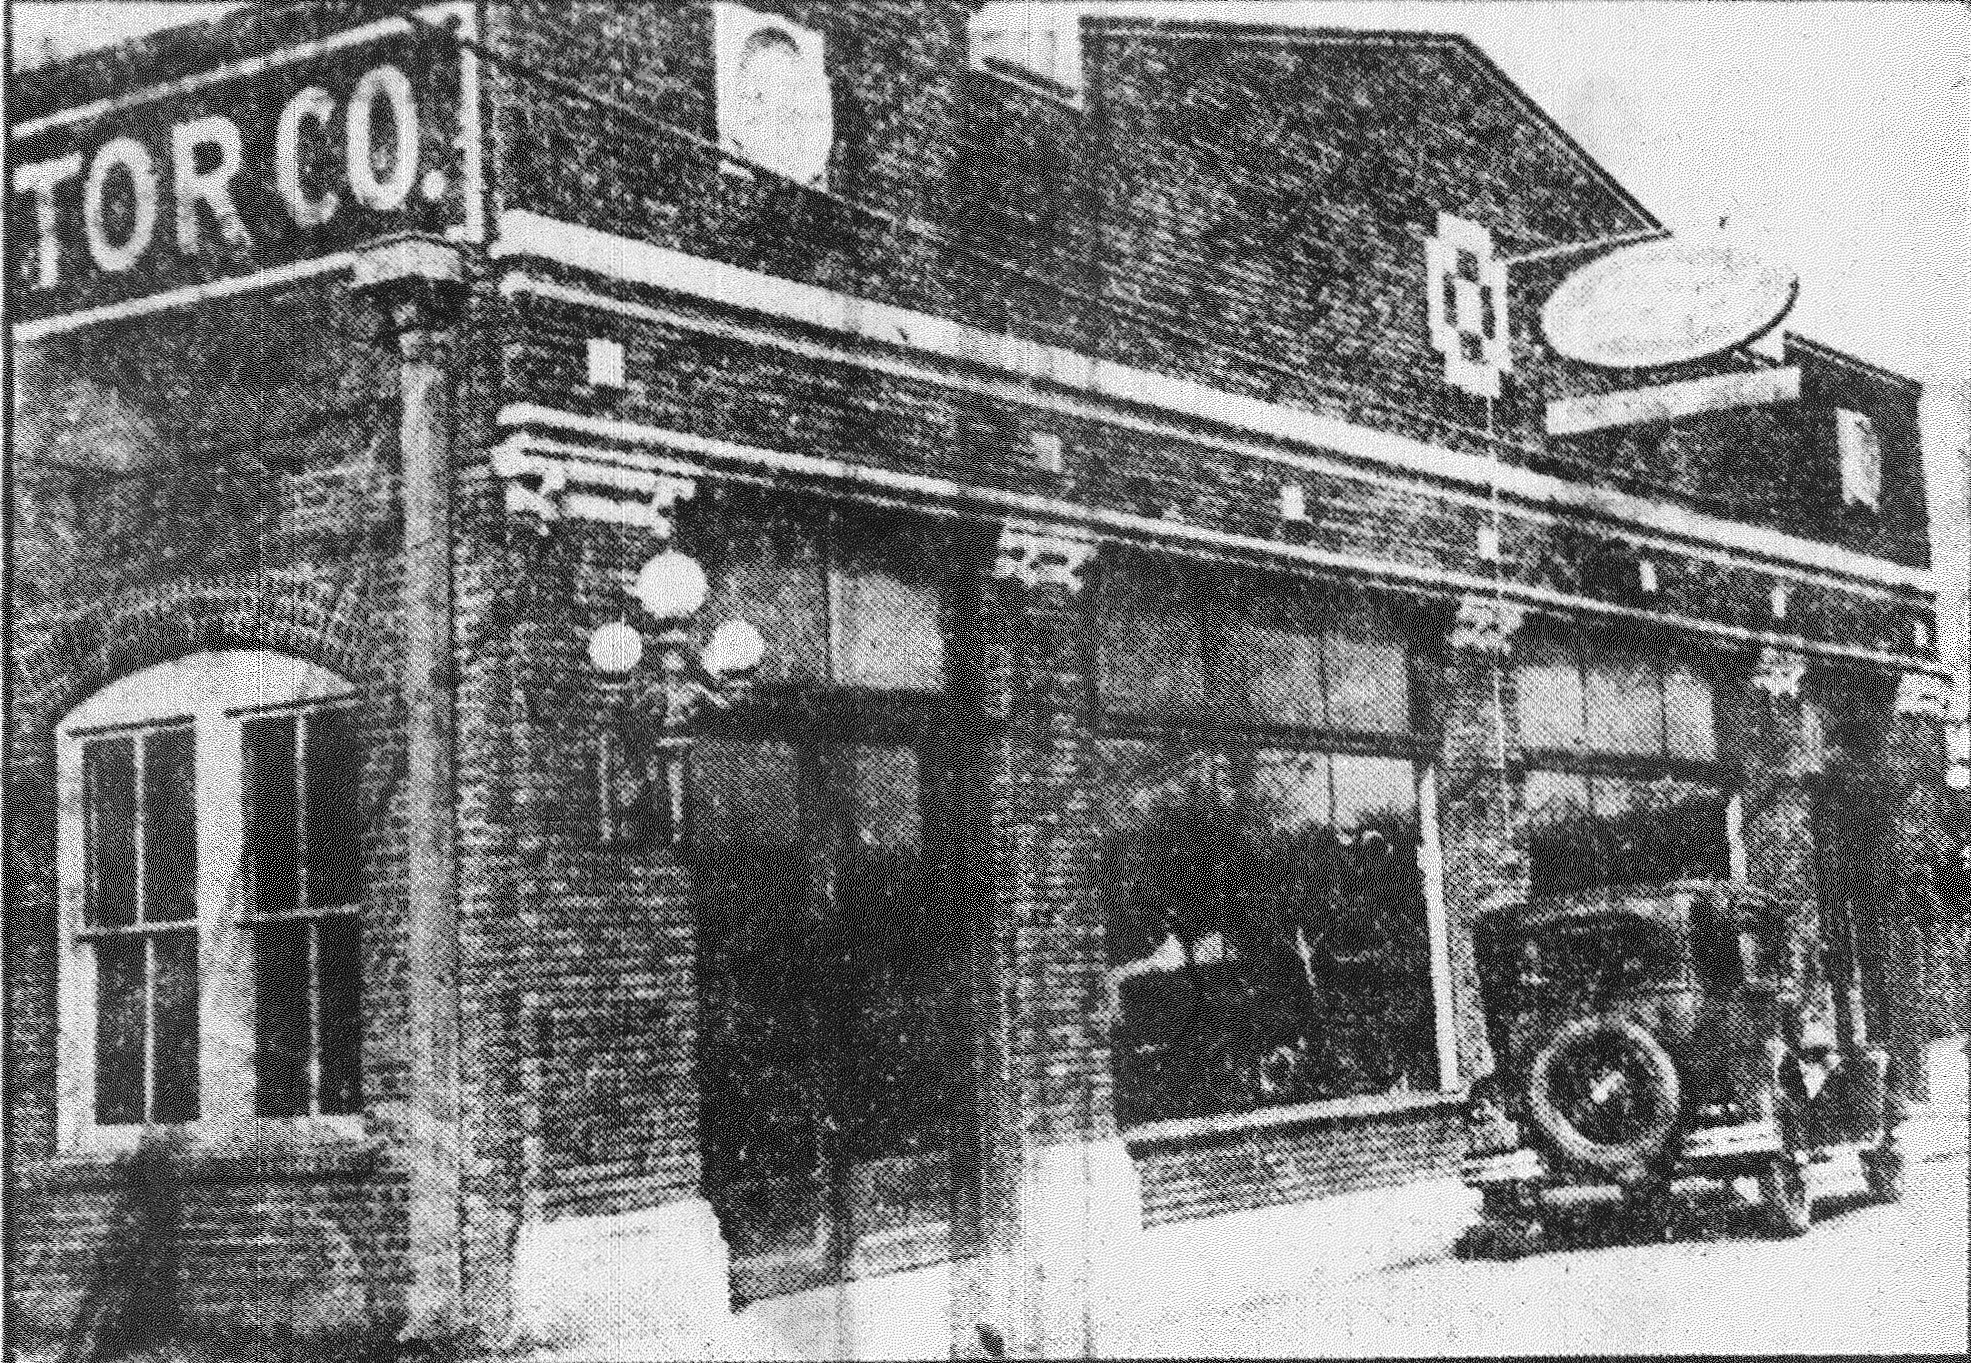 H.C. Bland's automobile dealership is seen in the early 20th century. He sold Fords for about 30 years.